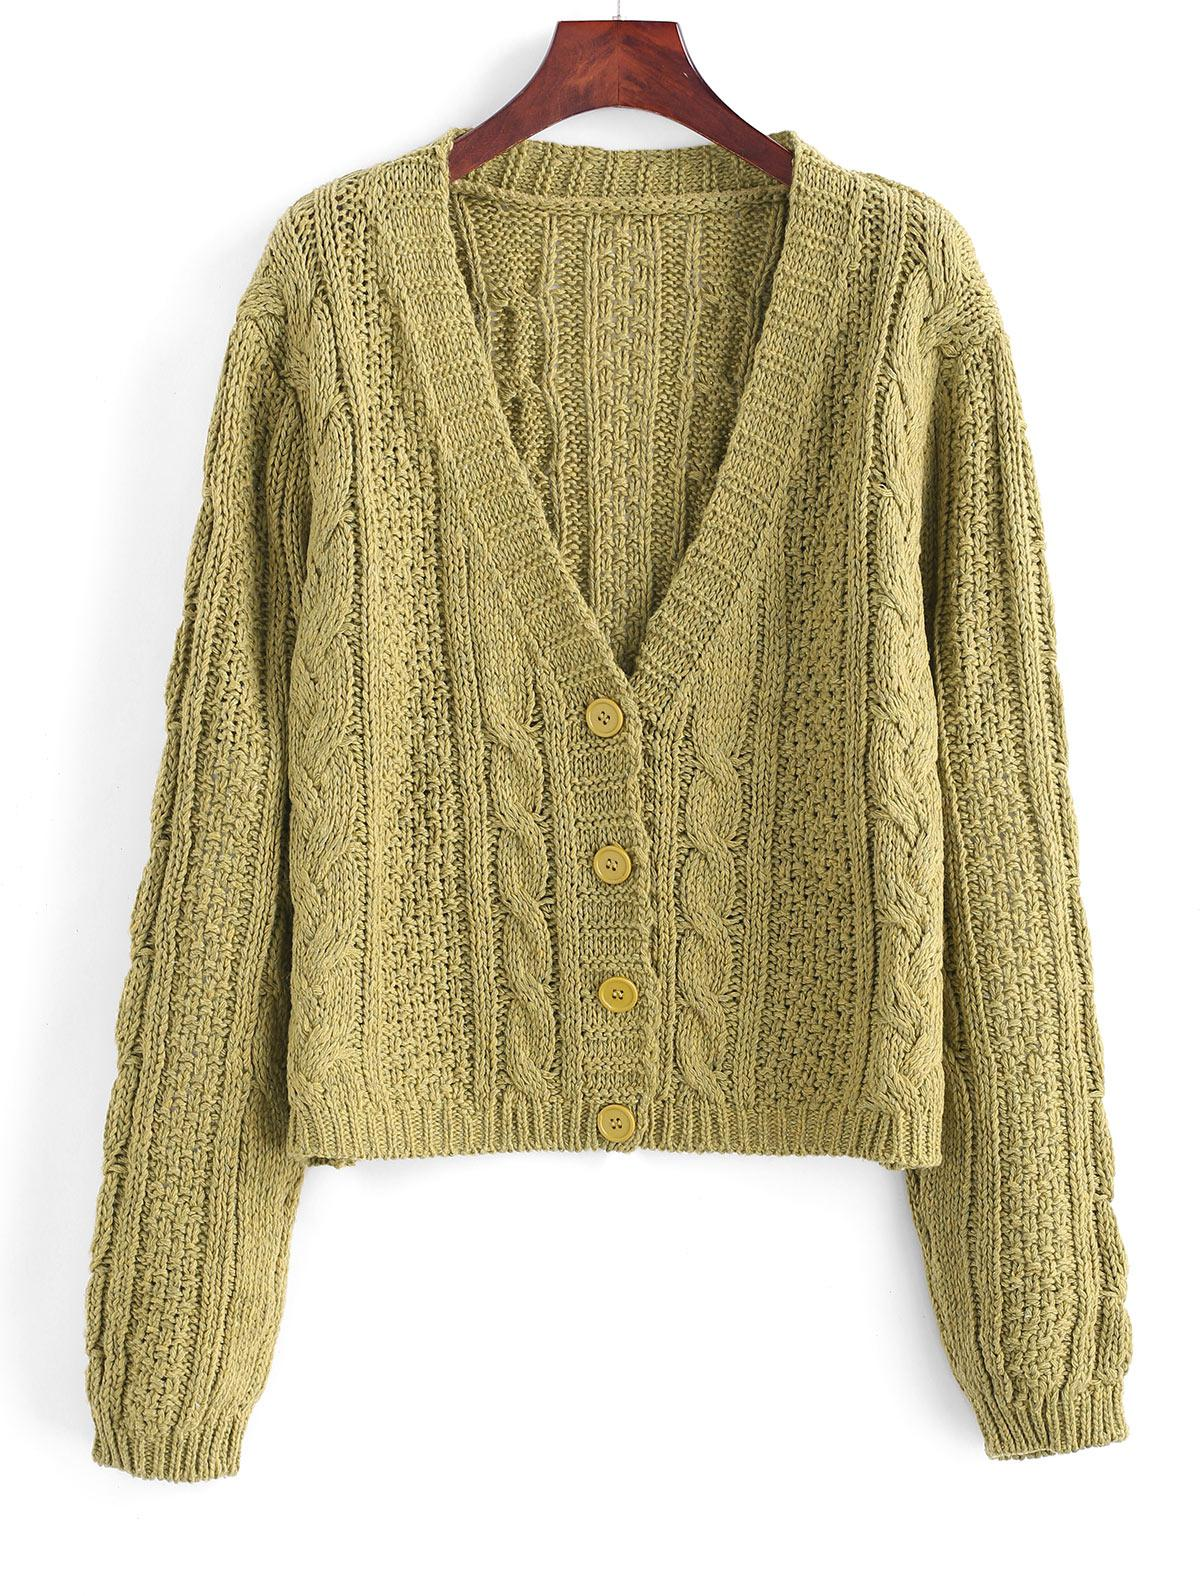 Plunging Button Up Cable Knit Cardigan